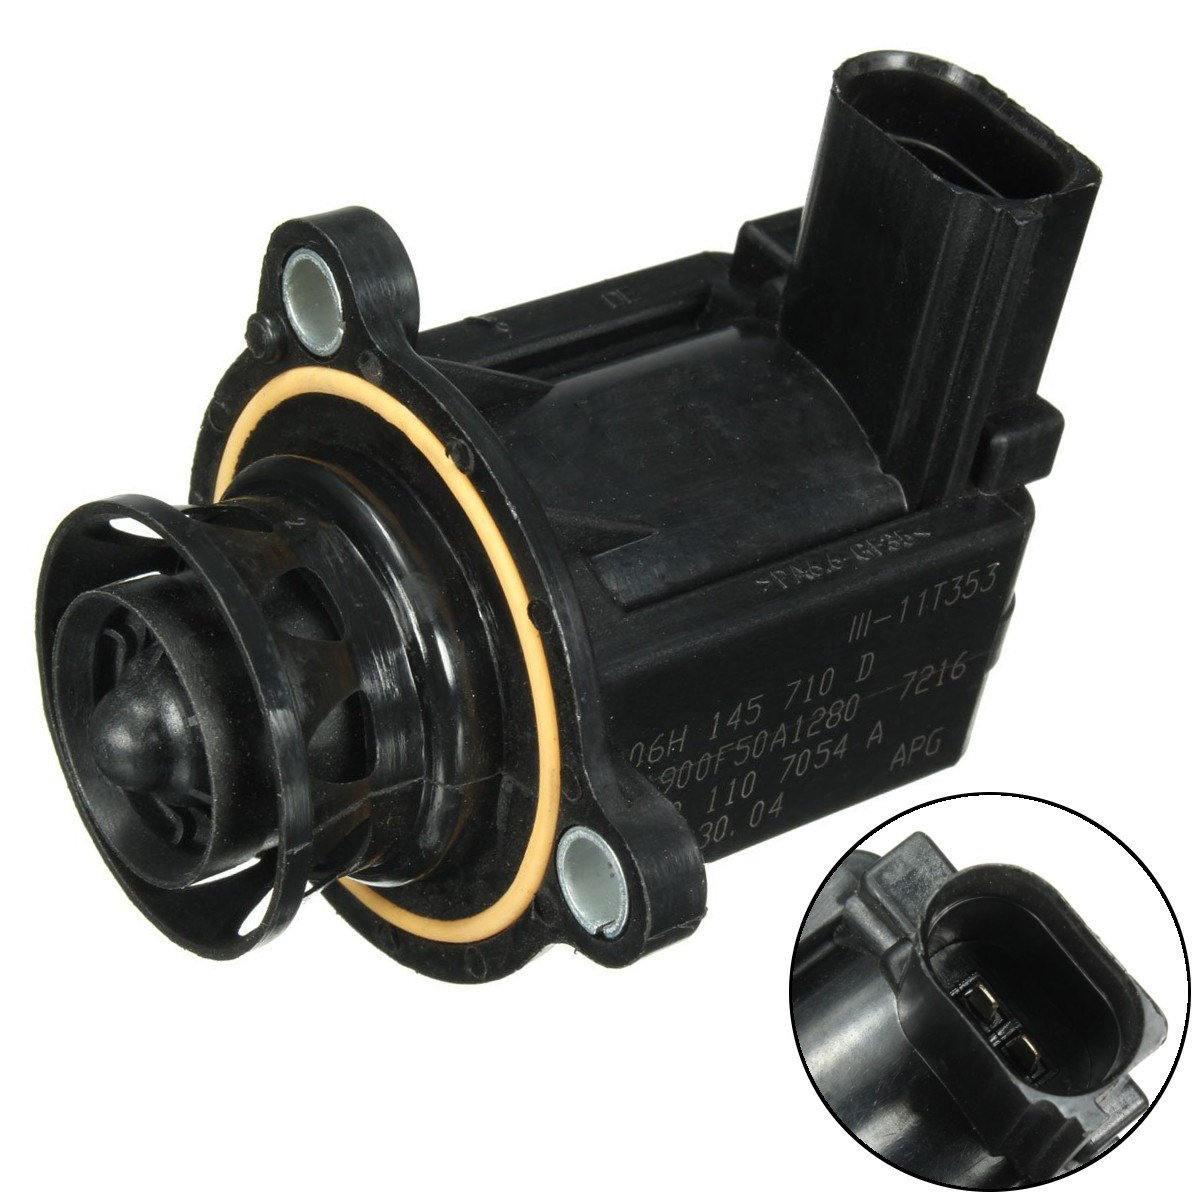 Air Infection Diverter Valve Turbo Turbocharger Cut Off Bypass For Audi A3 A4 A5 A6 Q5 TT For VW Beetle Jetta Passat 06H145710D automotive diesel petrol engine timing tool kit for vw audi a2 a3 s3 a4 a6 tt